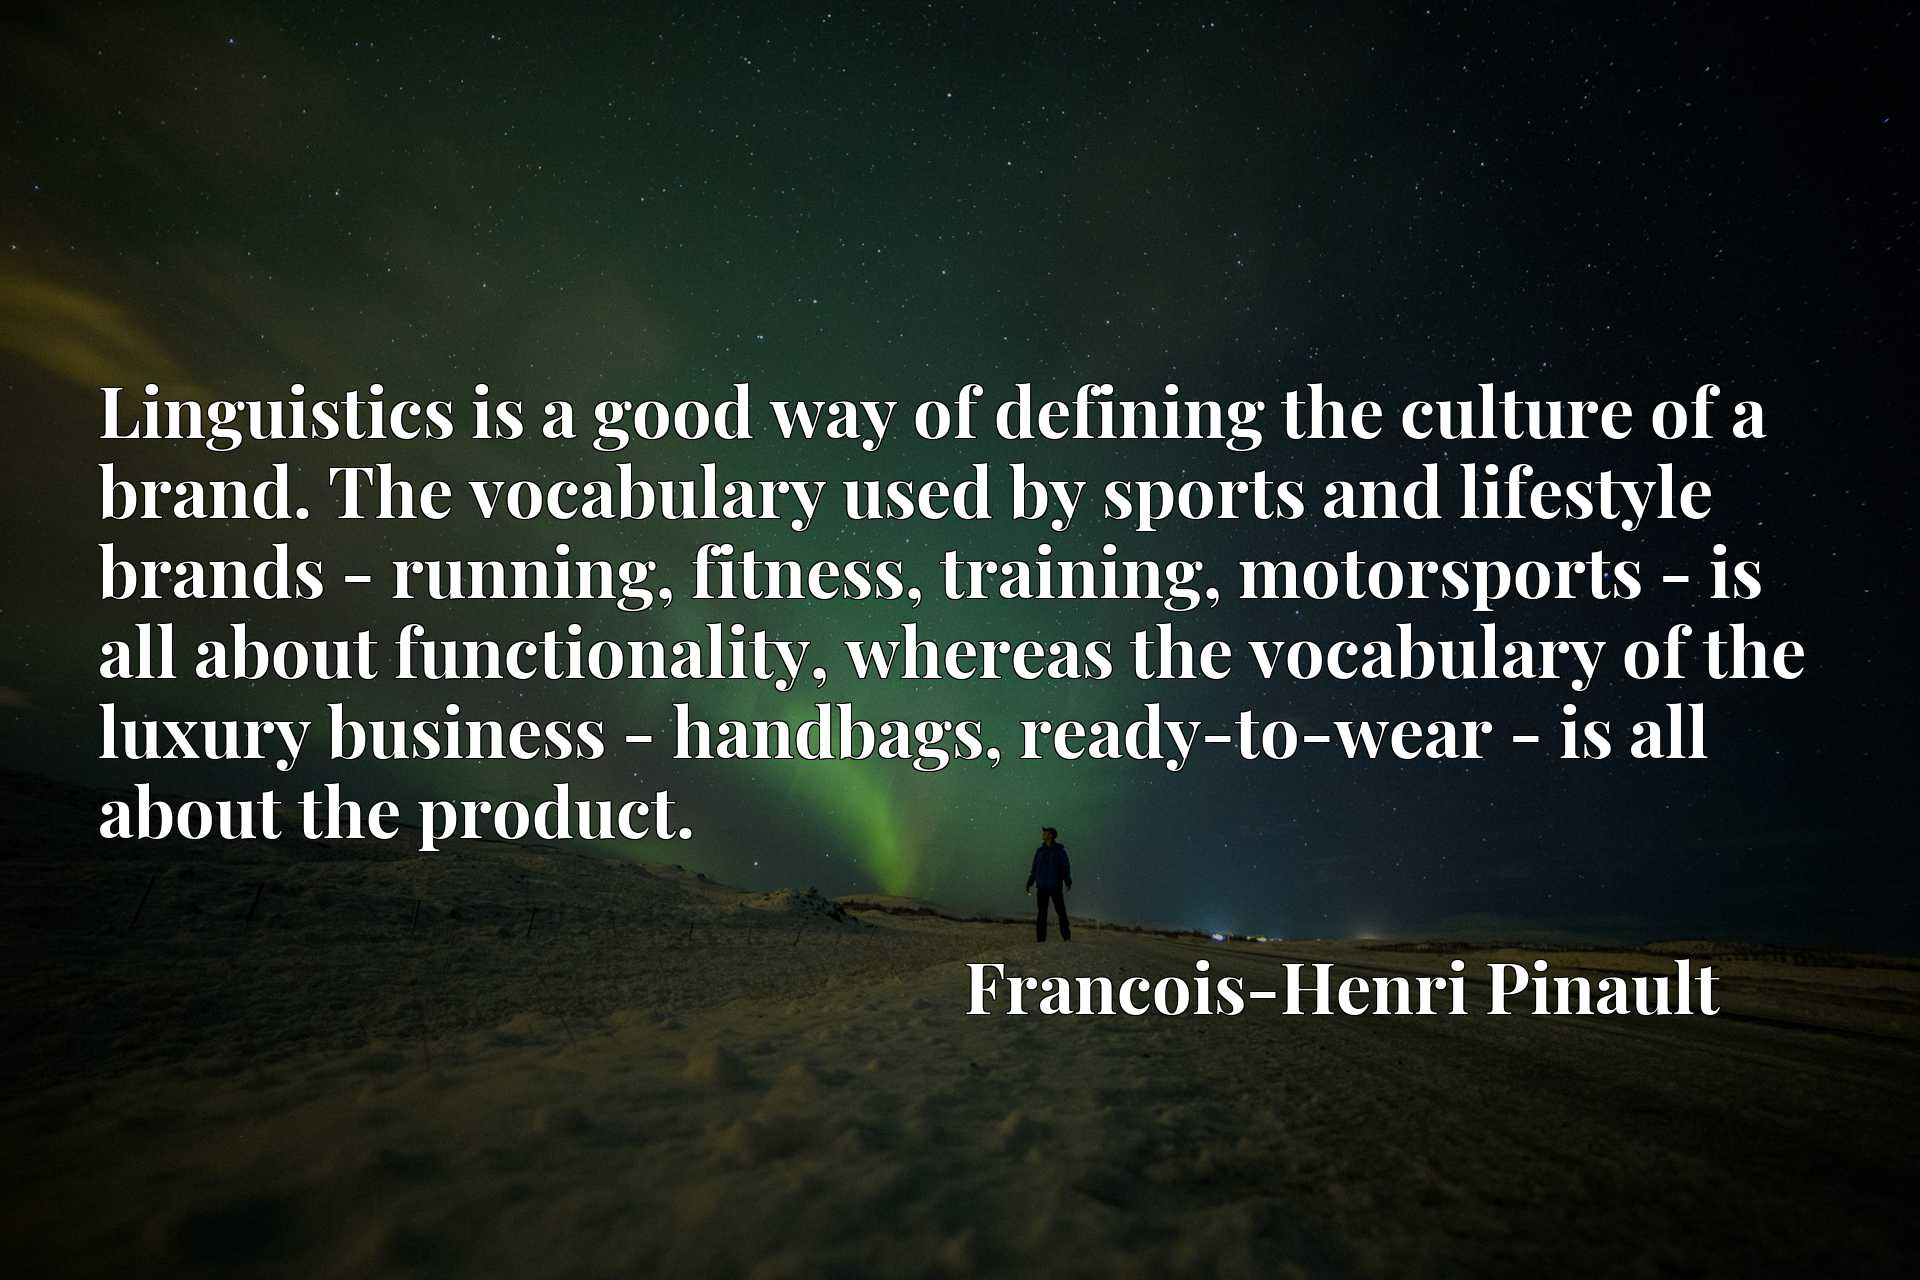 Linguistics is a good way of defining the culture of a brand. The vocabulary used by sports and lifestyle brands - running, fitness, training, motorsports - is all about functionality, whereas the vocabulary of the luxury business - handbags, ready-to-wear - is all about the product.